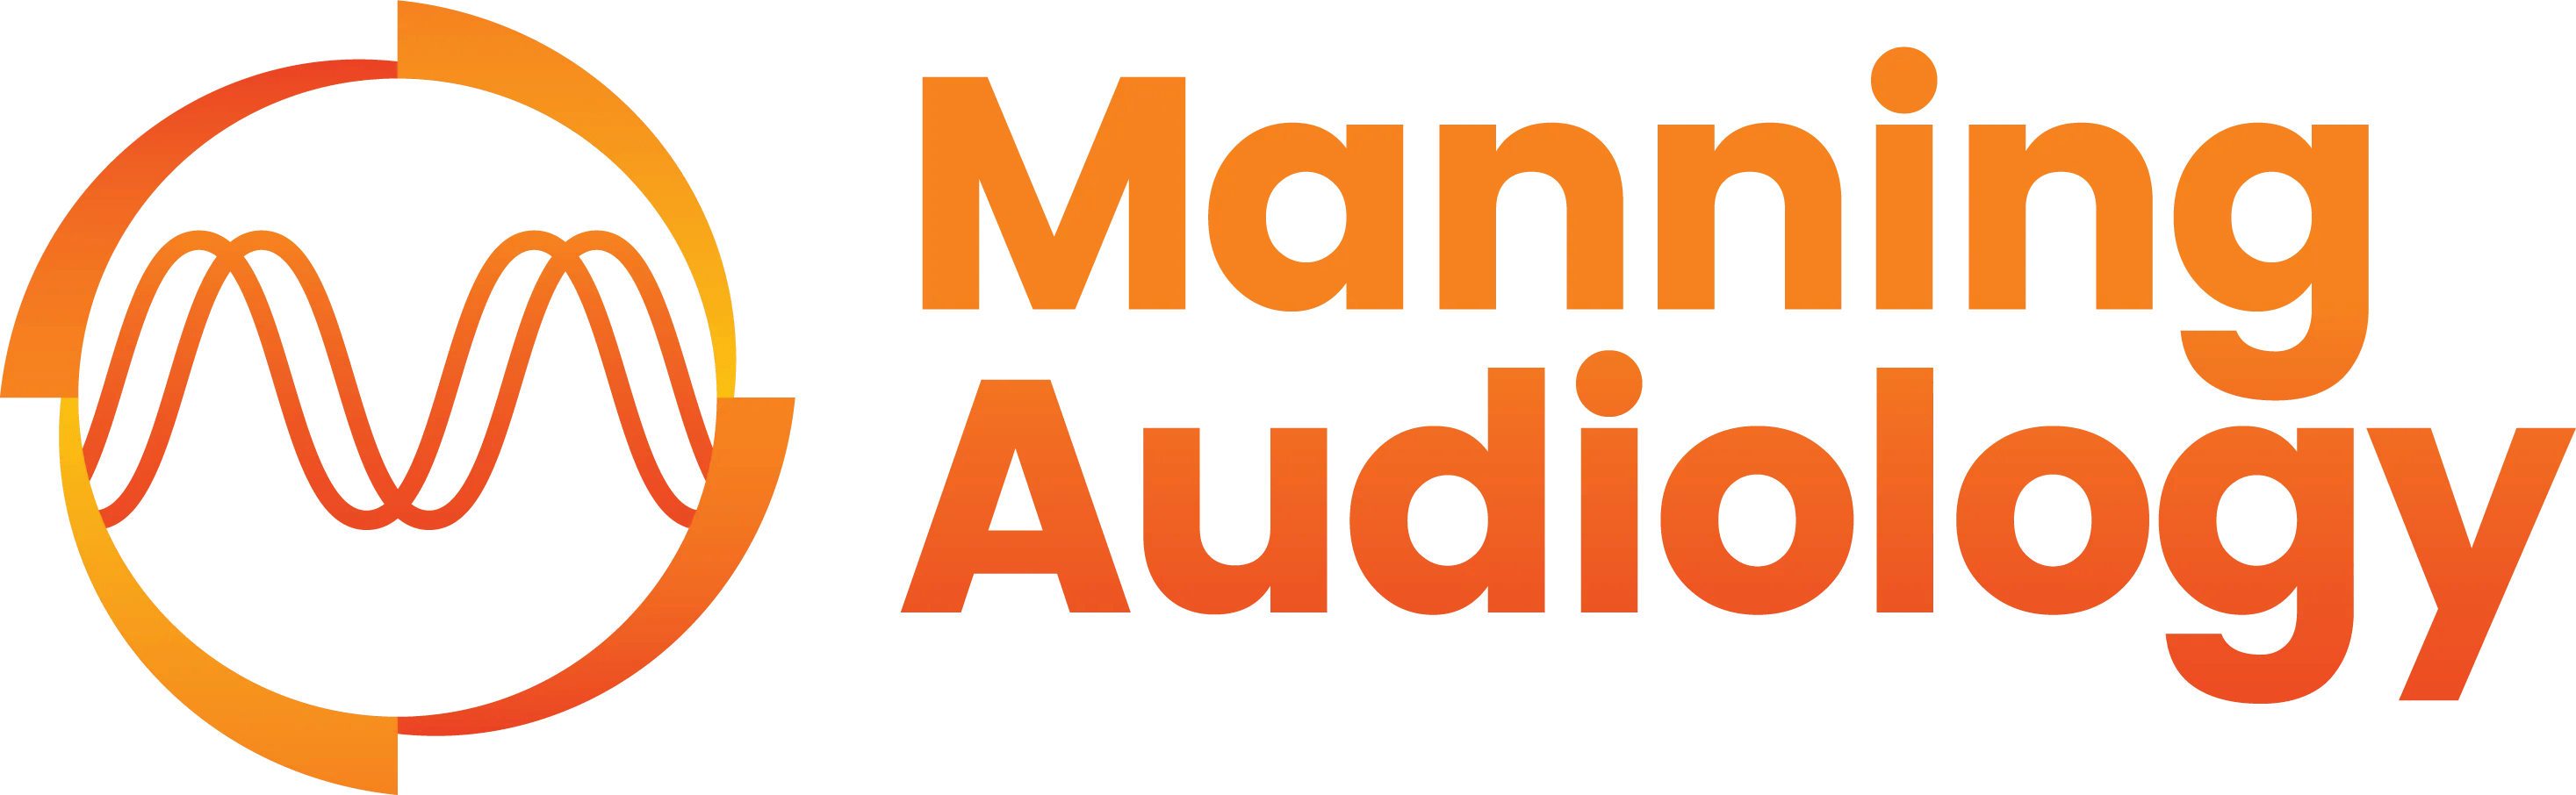 Manning Audiology – Independent Audiologist